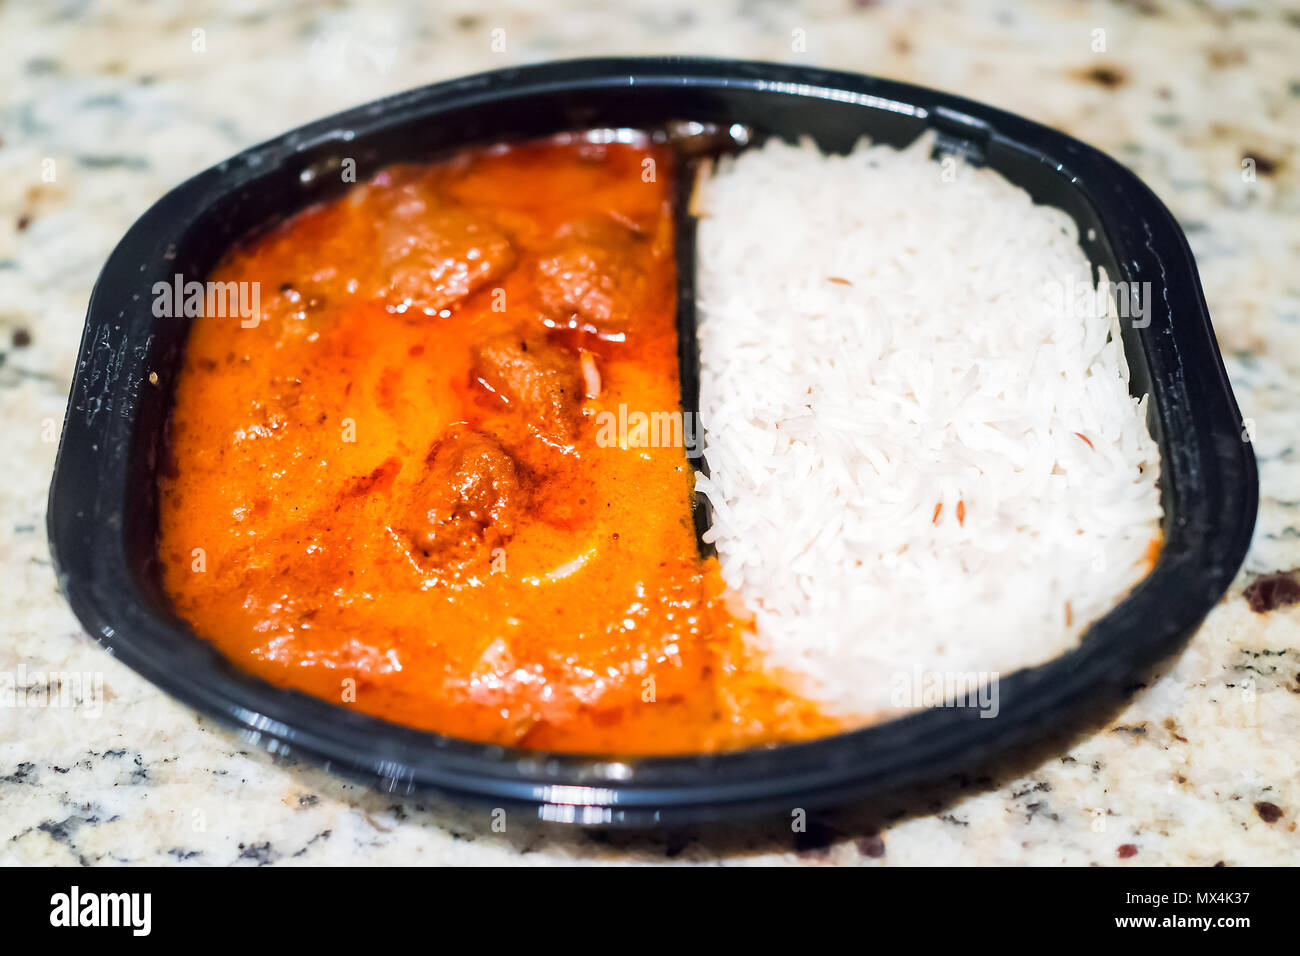 Orange red curry tikka masala sauce macro closeup, with white basmati rice in black plastic tv dinner fast food frozen meal container on table - Stock Image